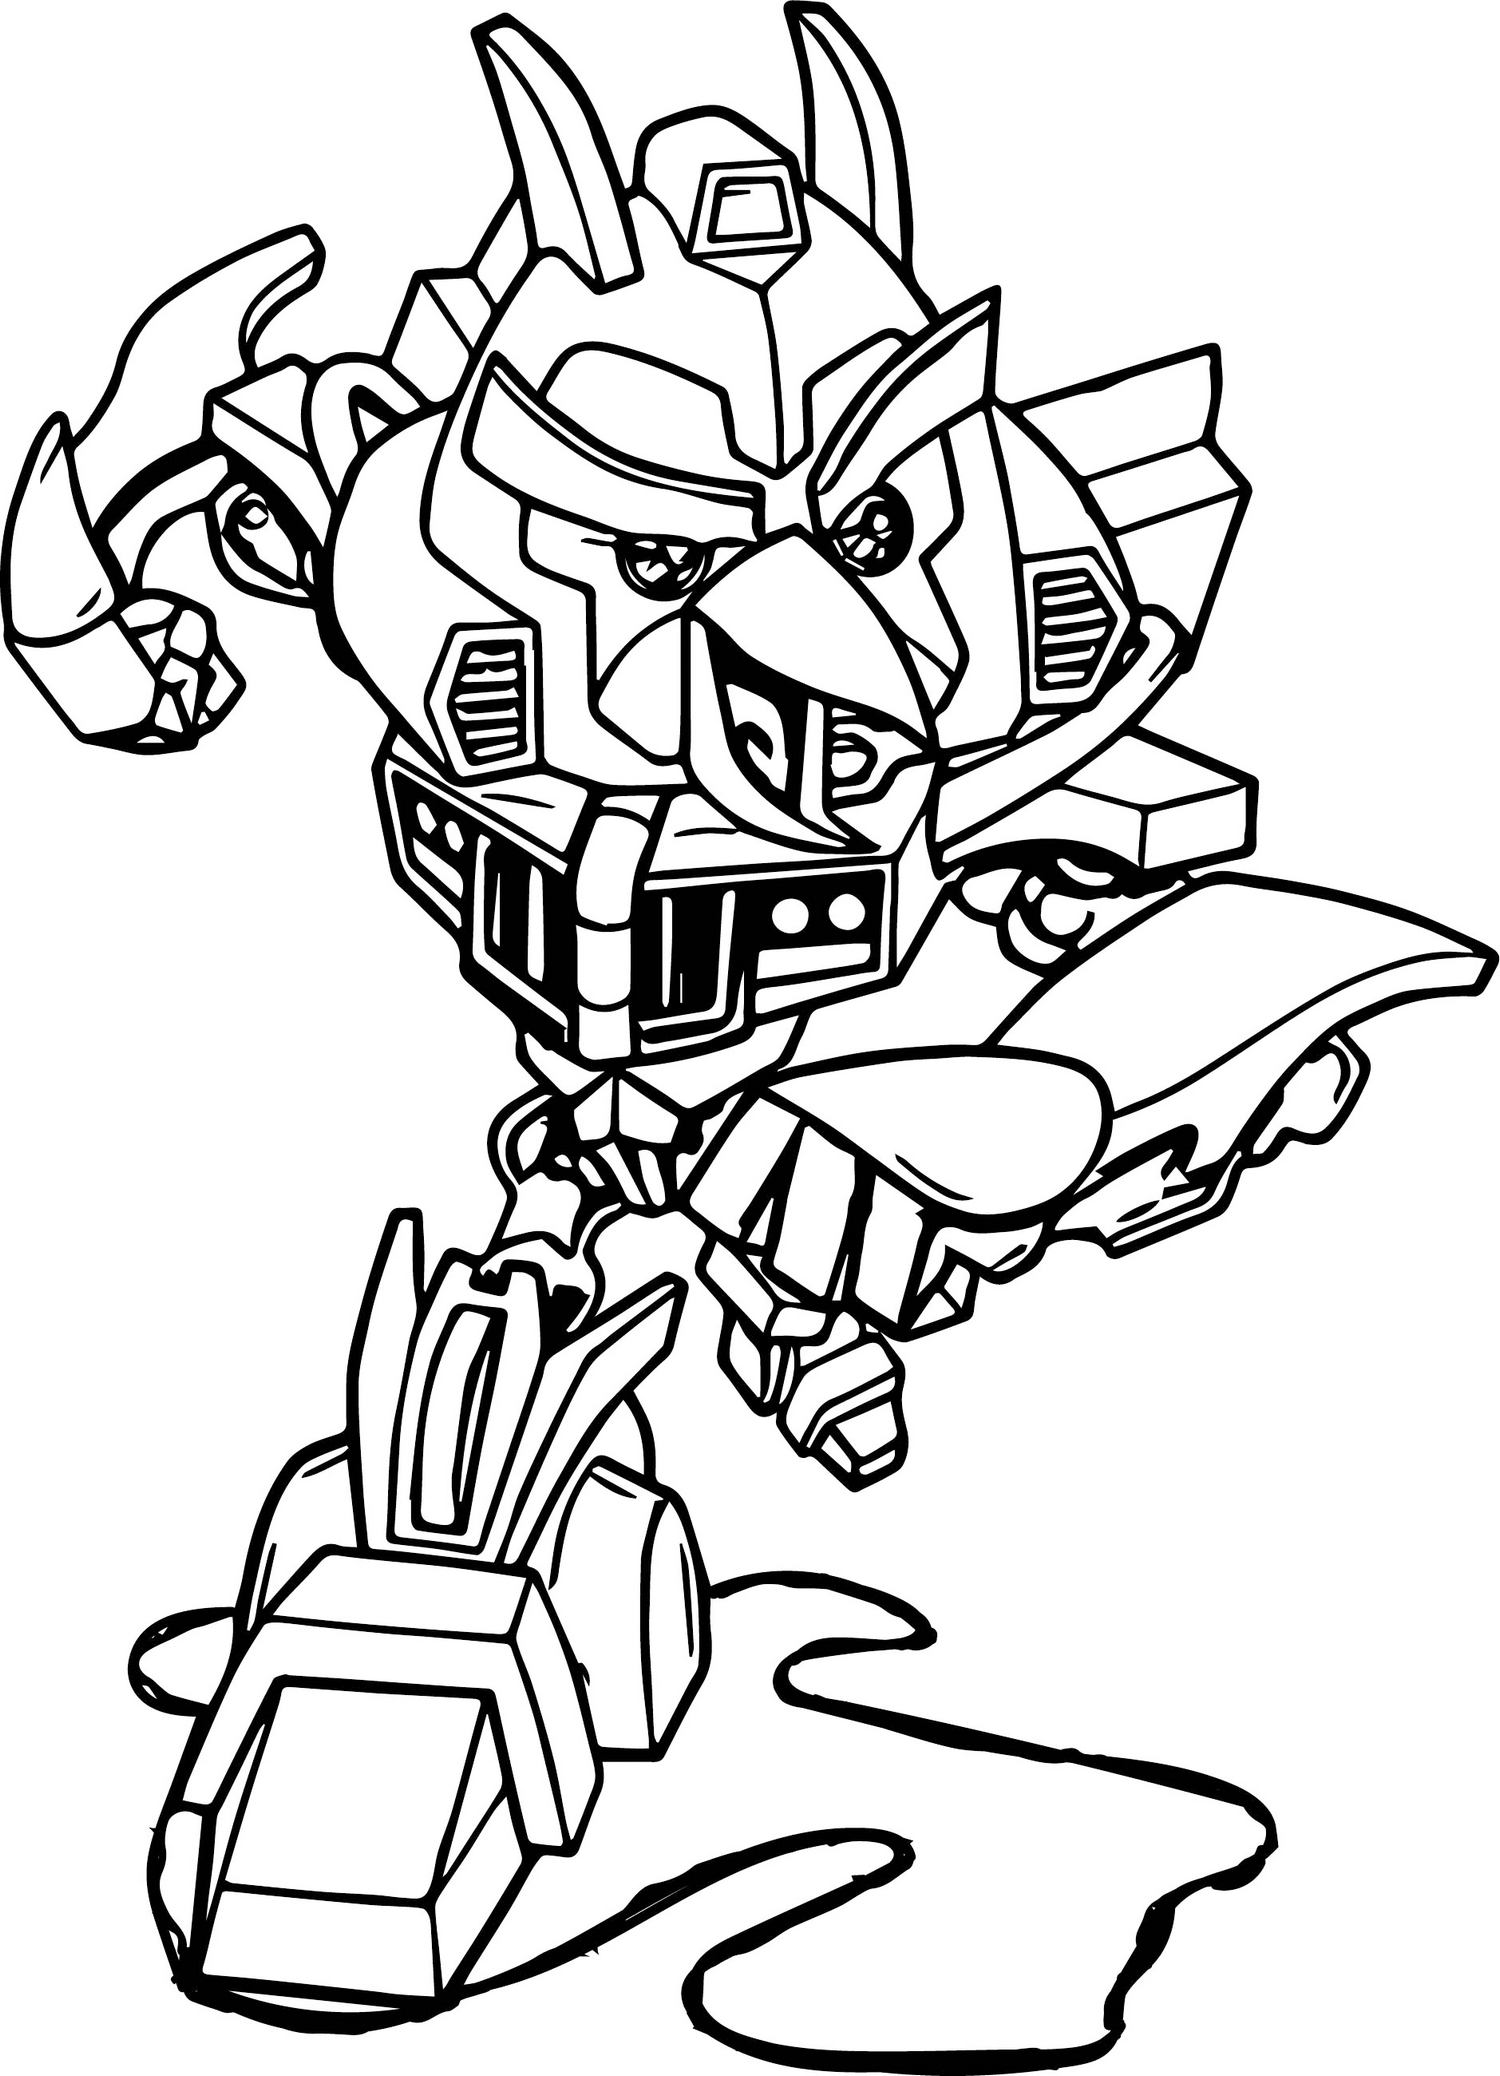 transformers bumblebee coloring pages bumblebee coloring pages best coloring pages for kids bumblebee coloring pages transformers